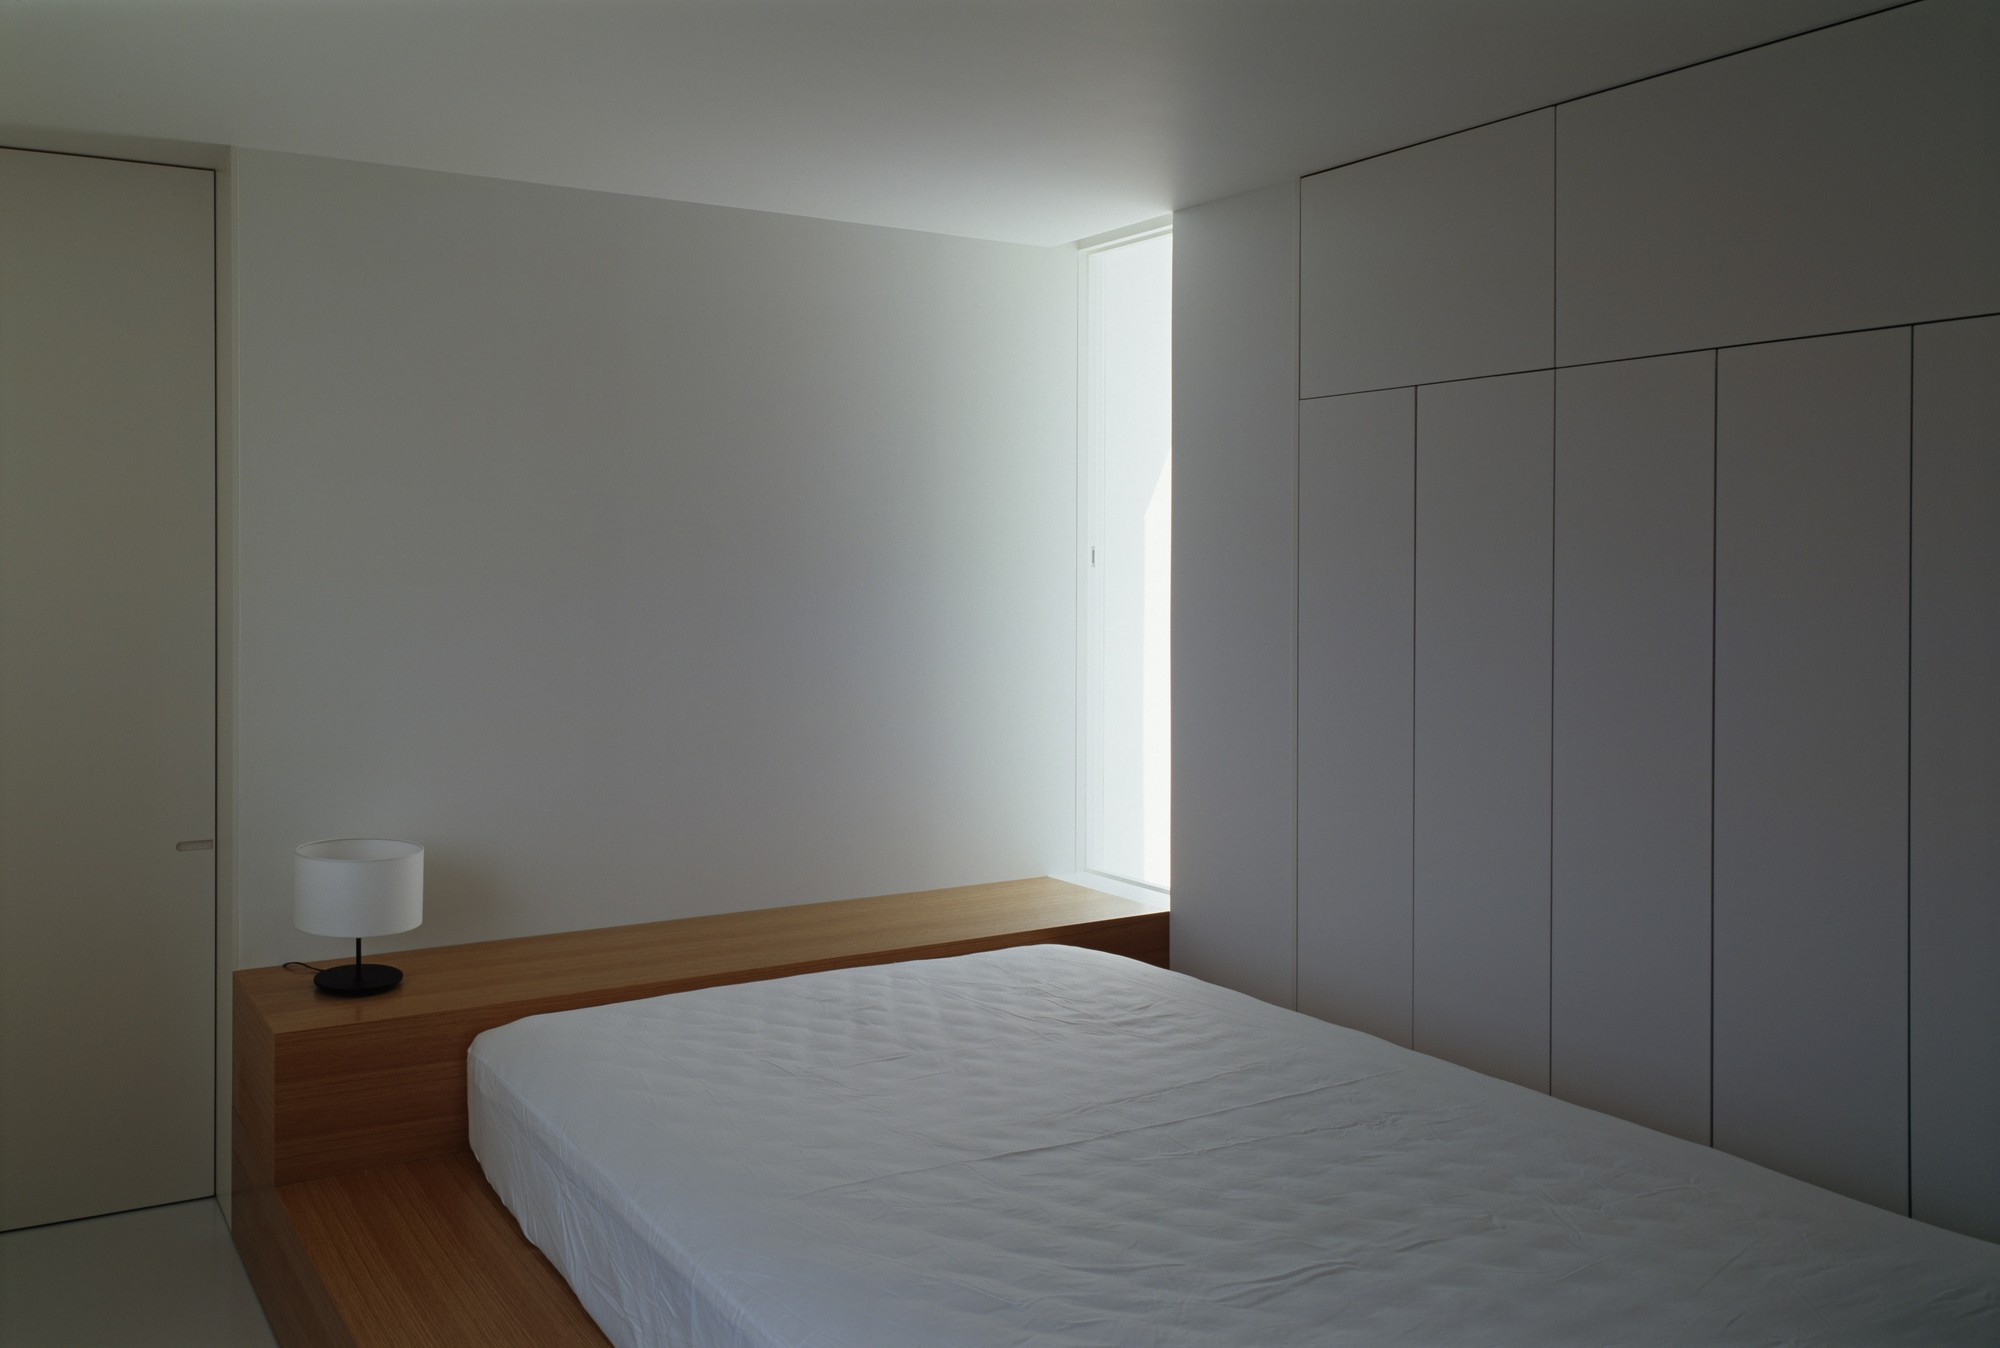 gallery of white cave house takuro yamamoto architects 12. Black Bedroom Furniture Sets. Home Design Ideas